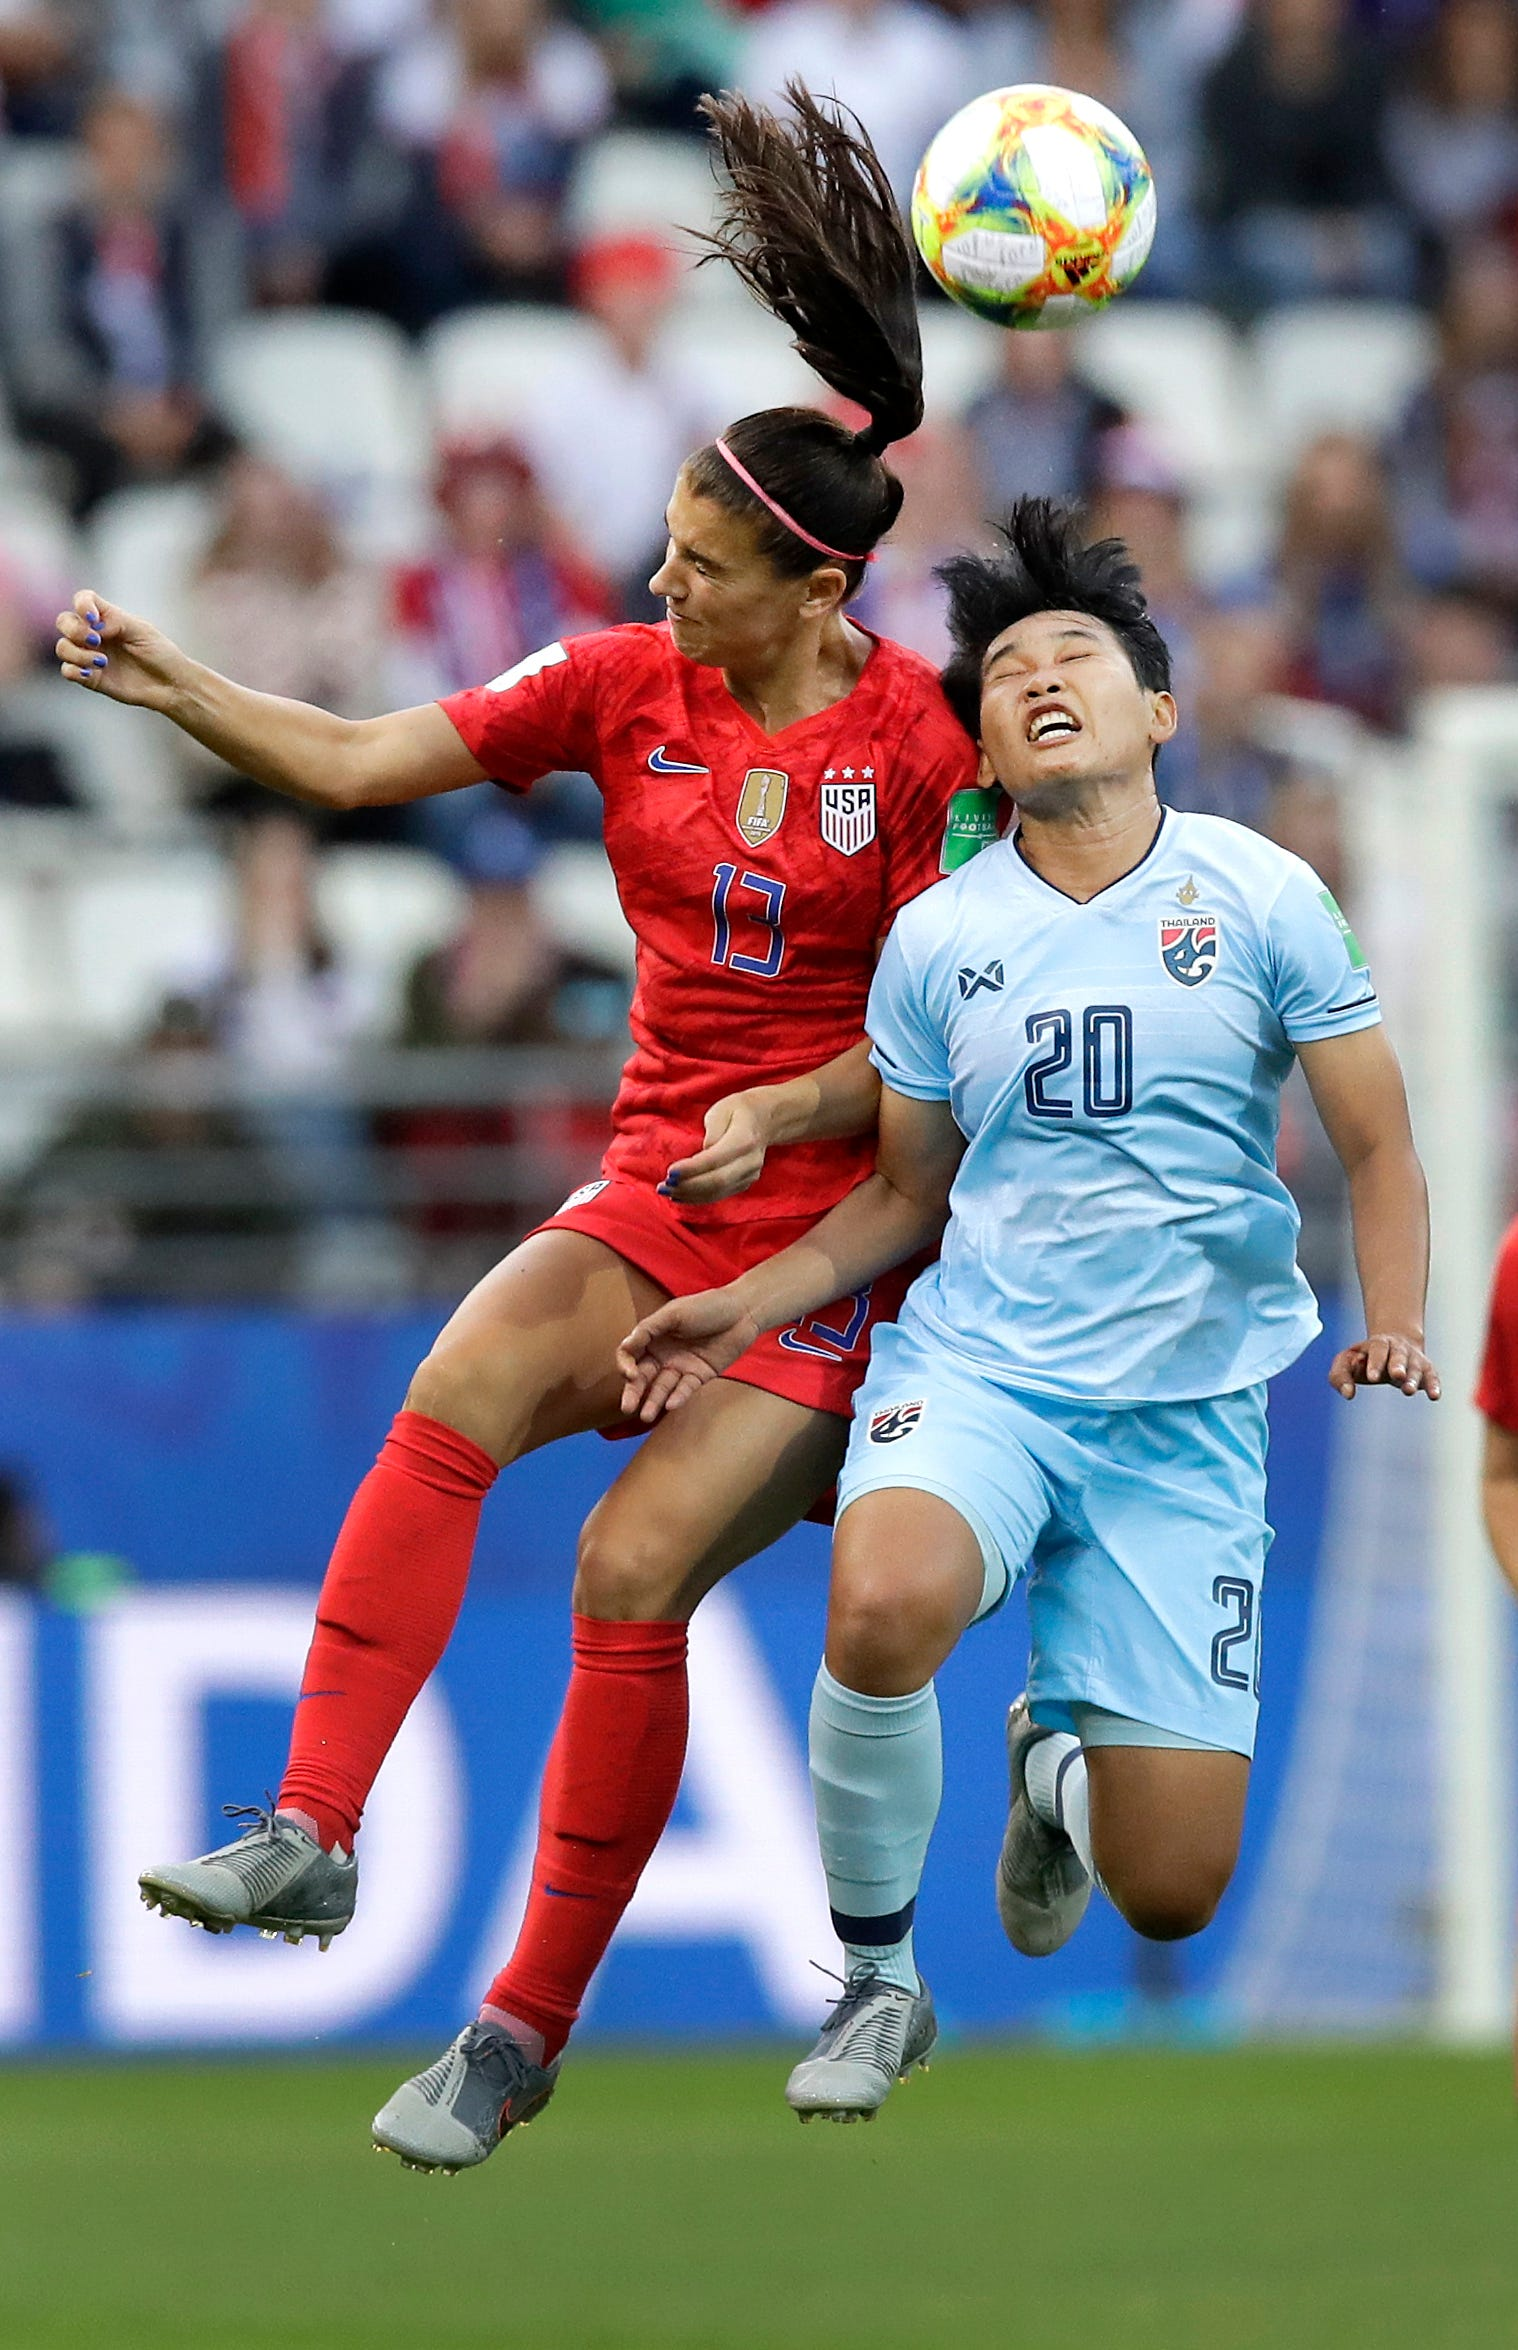 United States' Alex Morgan, left, and Thailand's Wilaiporn Boothduang, right, challenge for the ball during the Women's World Cup Group F soccer match between United States and Thailand at the Stade Auguste-Delaune in Reims, France, Tuesday, June 11, 2019.